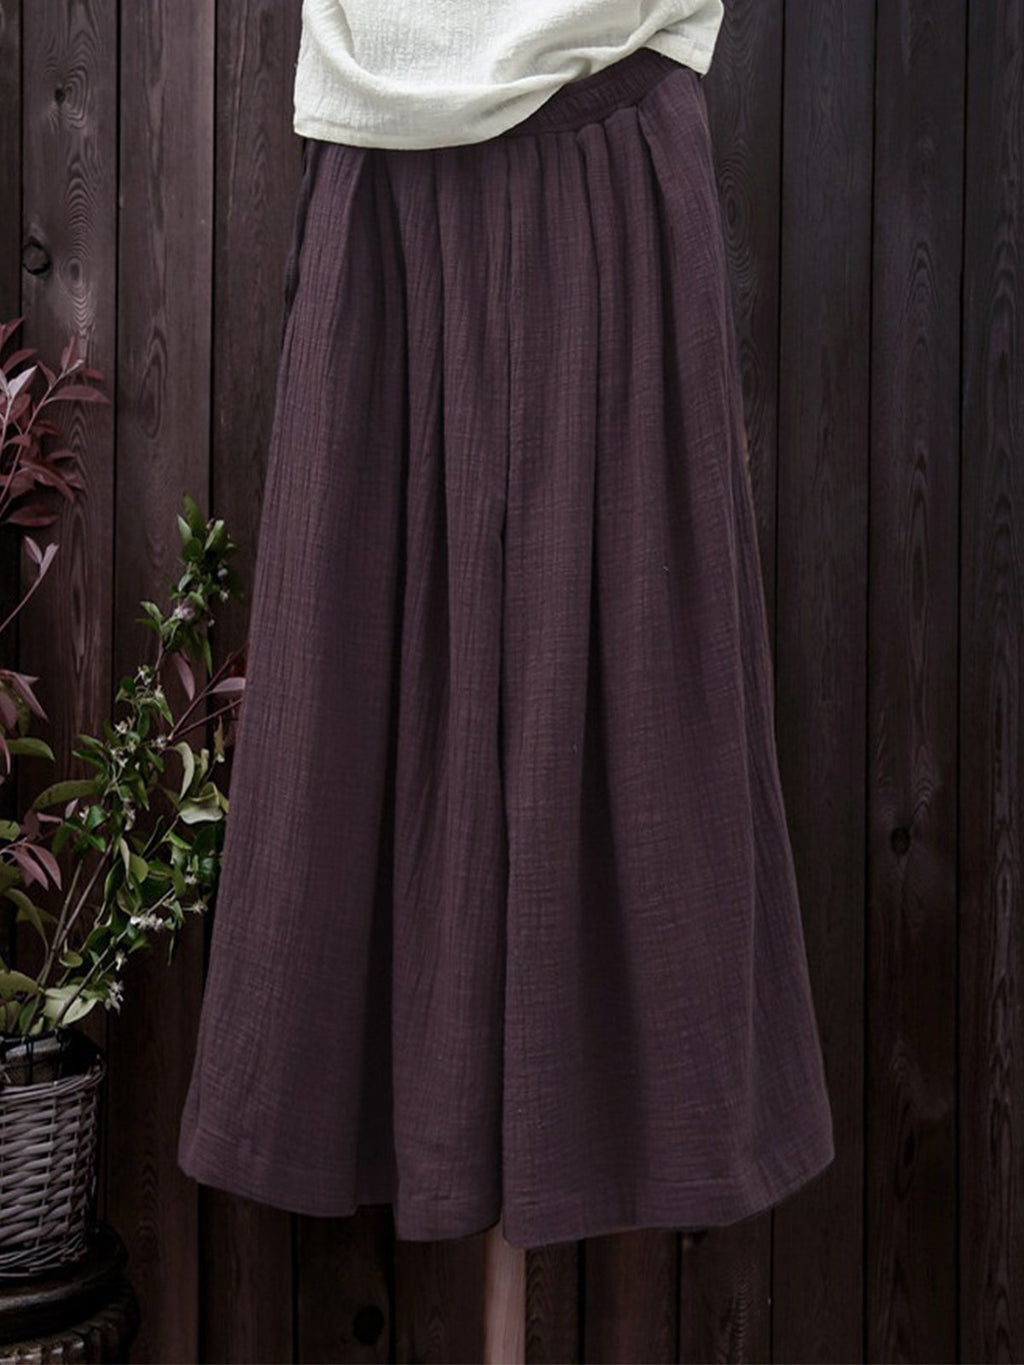 Linen/Cotton Plus Size Casual Solid Light-Weight Wide-Legged Pants